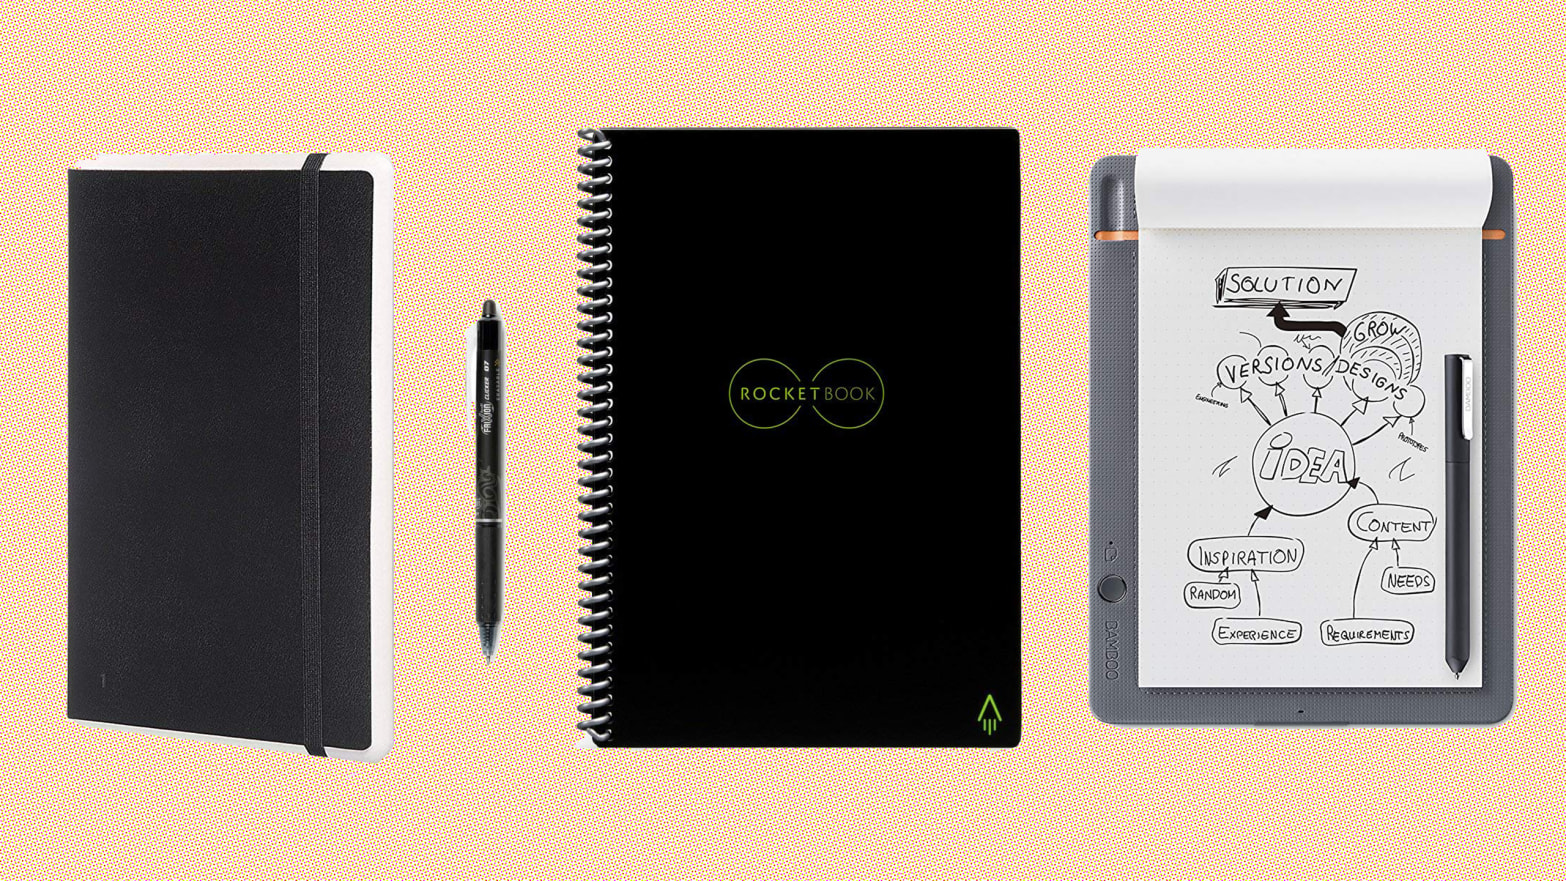 Wacom, Rocketbook, Moleskin, and More Of The Best Smart Notebooks For Every Need